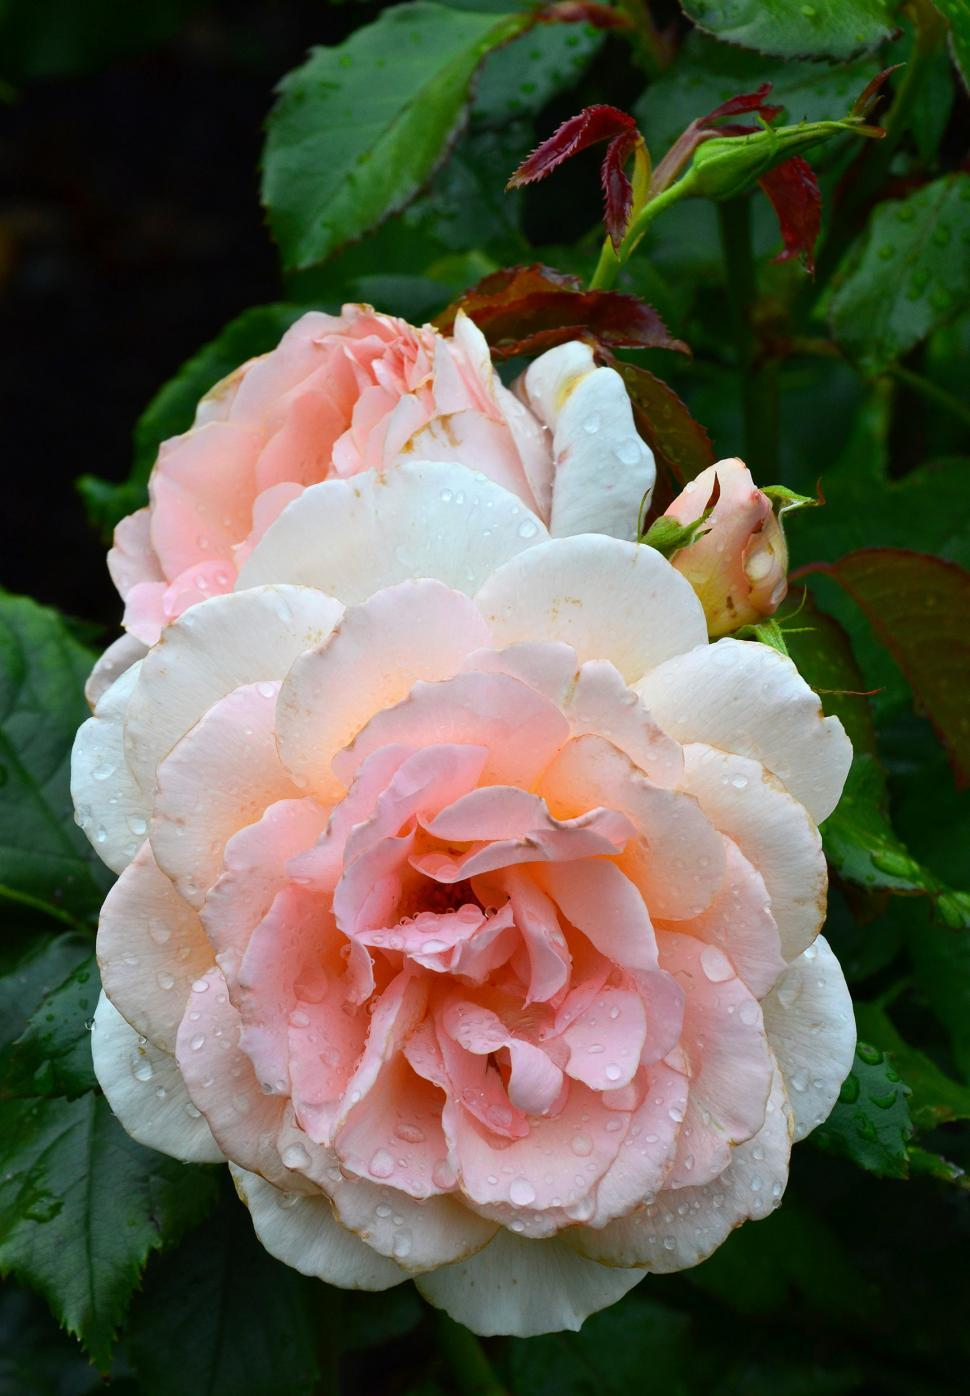 Download Free Stock HD Photo of Hybrid tea rose 'Chandos Beauty'  Online